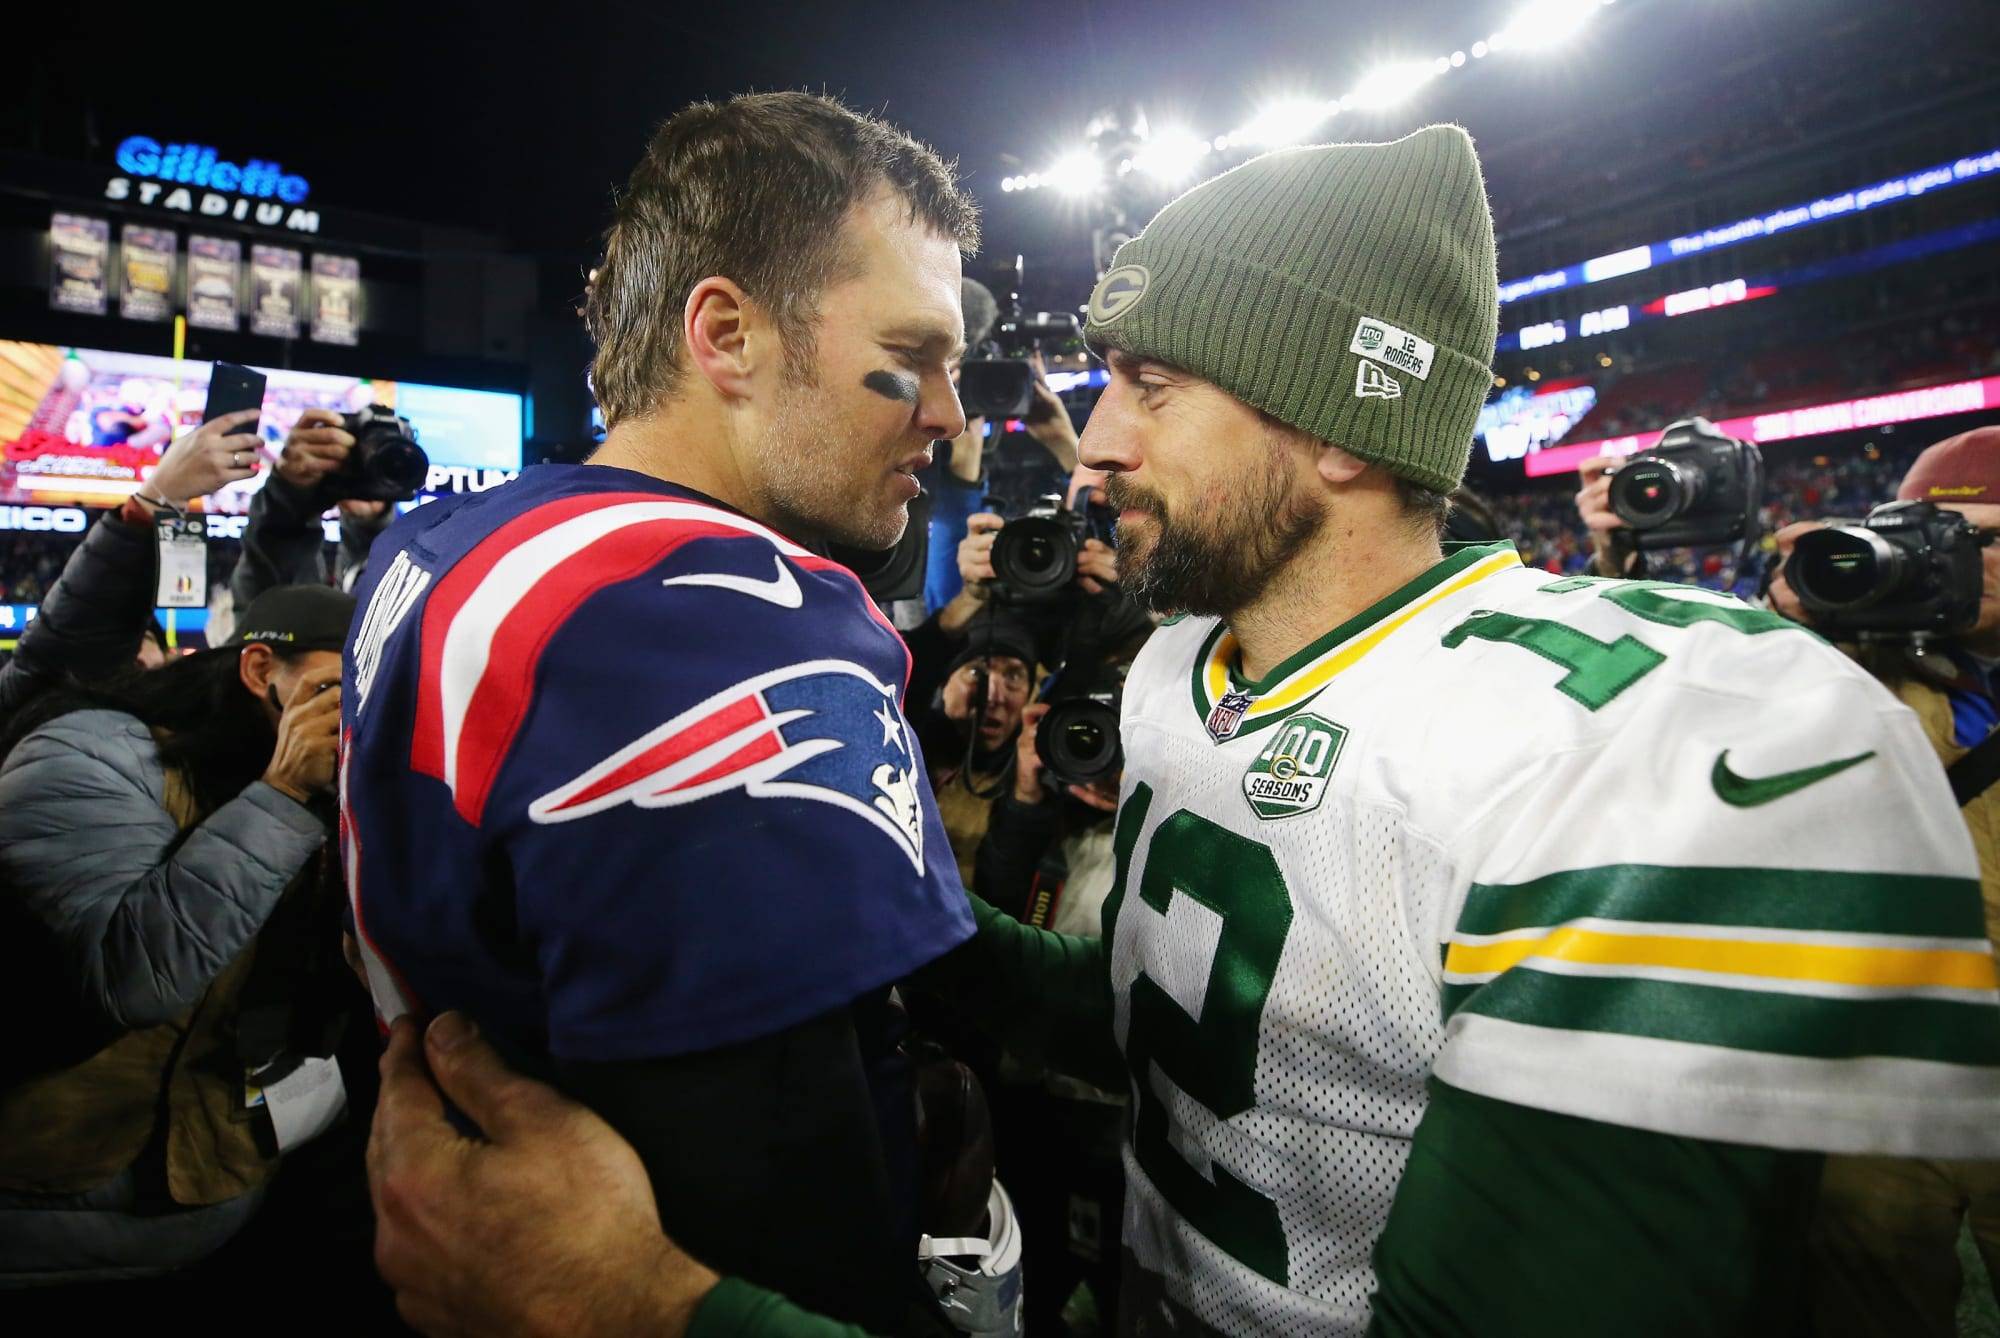 Patriots: Chris Simms has worst Tom Brady-Aaron Rodgers take imaginable